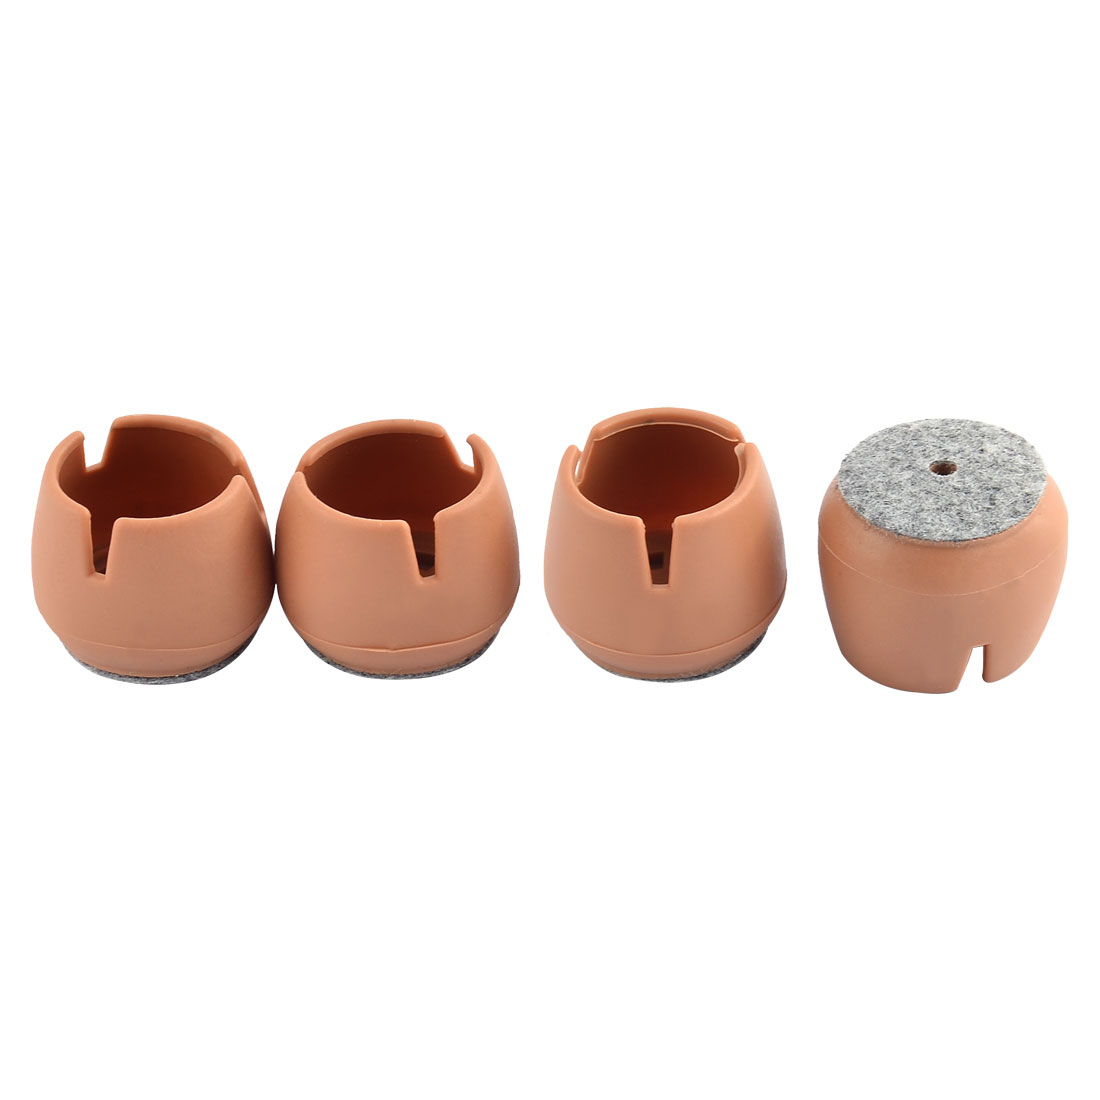 Home Cylindrical Shaped Table Desk Chair Leg Furniture Foot Covers 4pcs